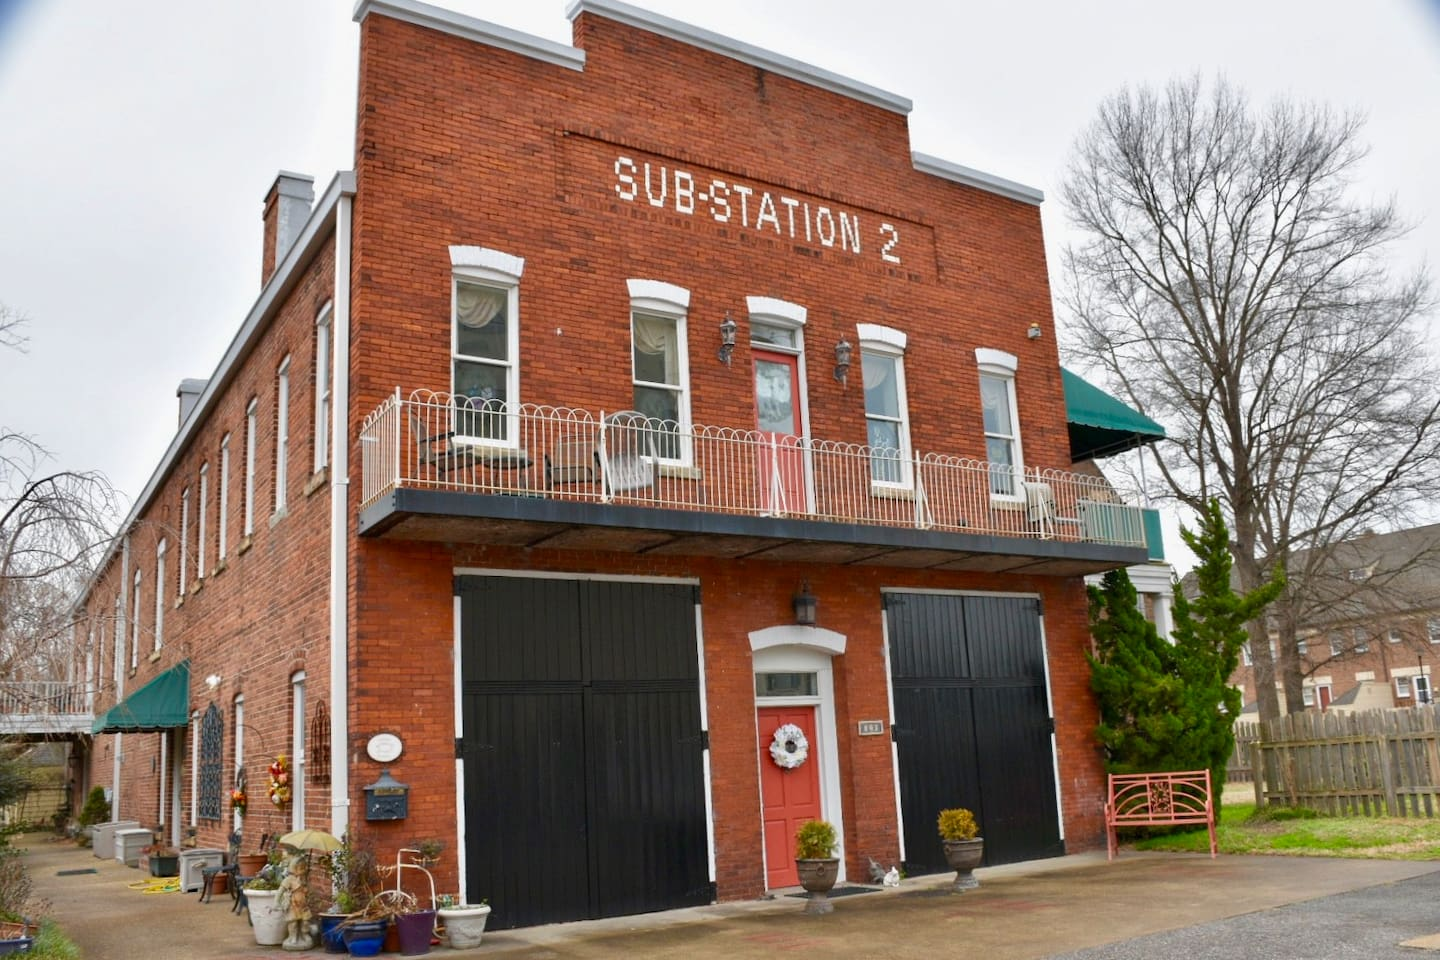 Substation Street View